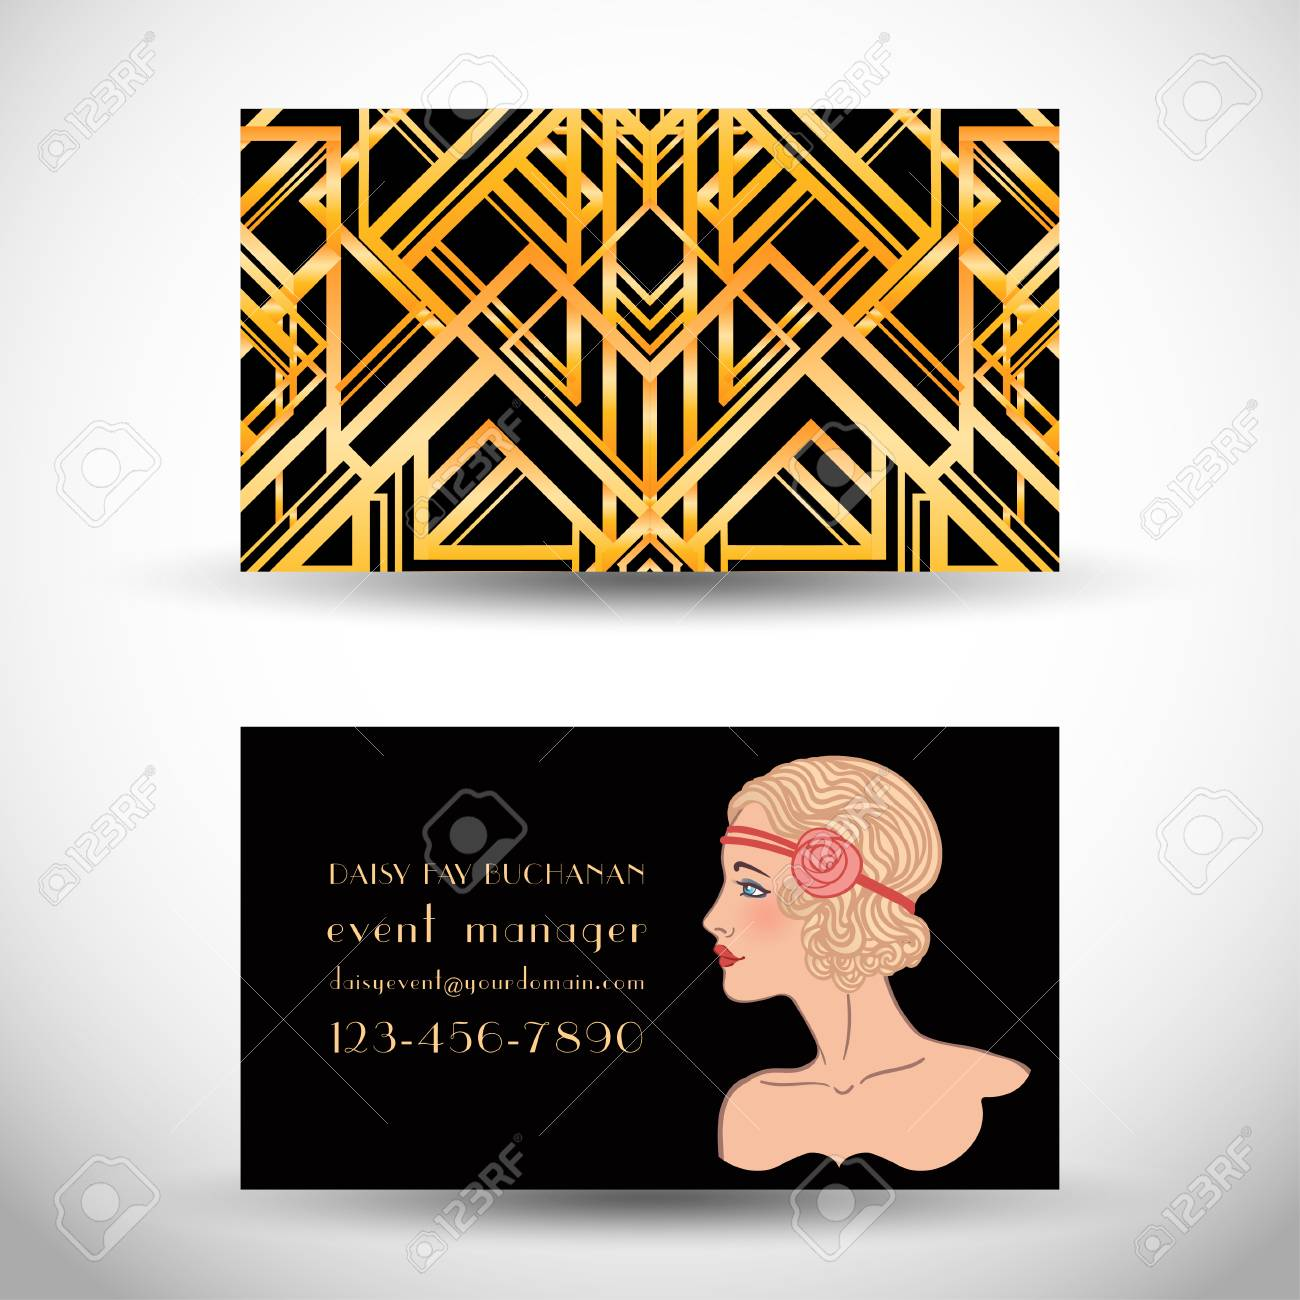 Art Deco Style Business Card. Abstract Vintage Patterns And ...